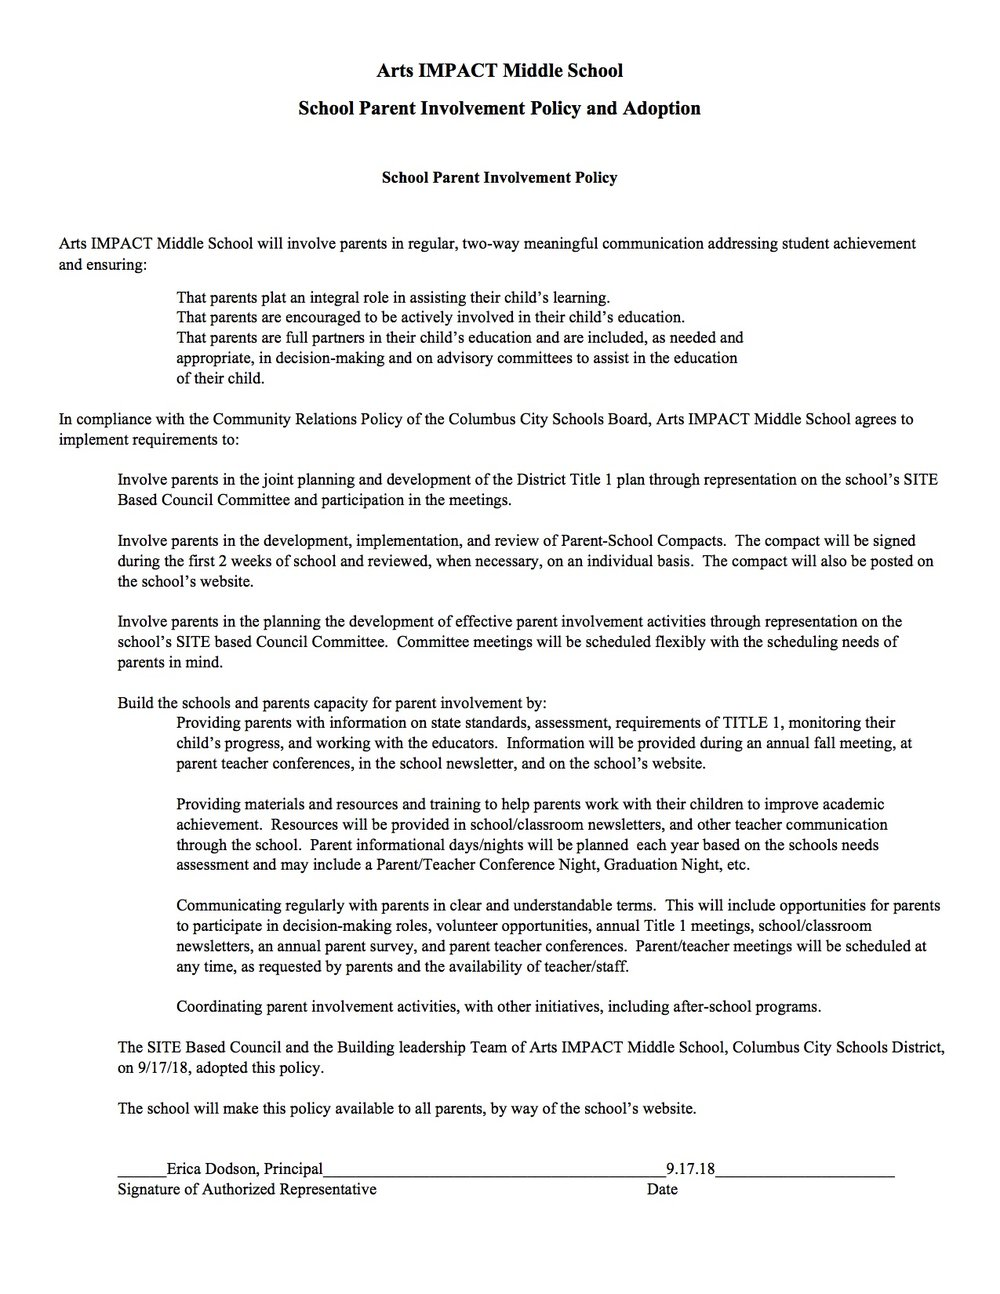 Arts IMPACT Middle School Parent Involvement Policy and Adoption (1).jpg